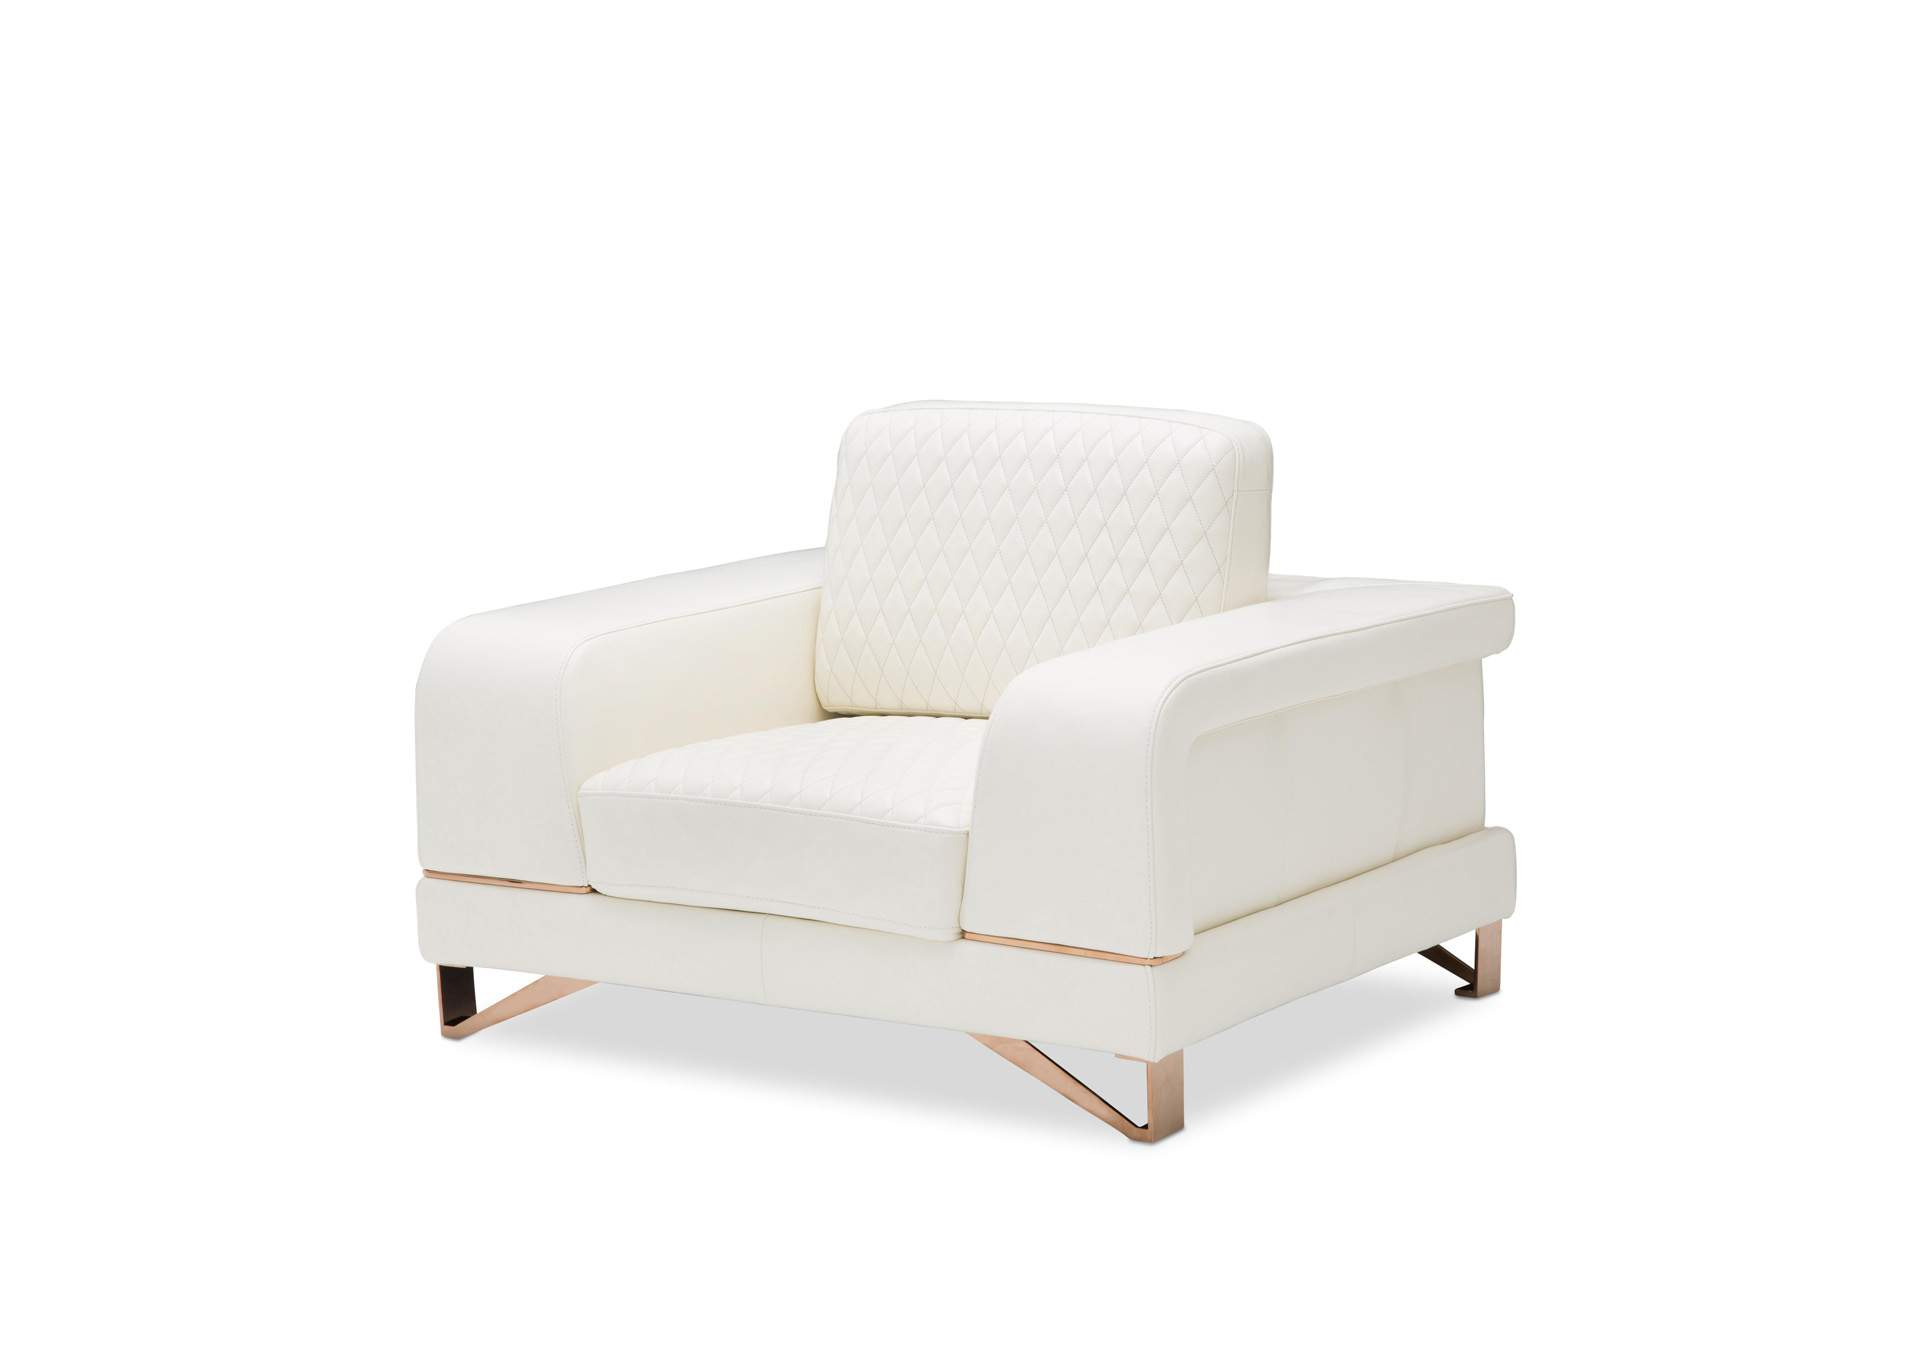 Stupendous V Watts Furniture Bianca White Rose Gold Leather Chair And Caraccident5 Cool Chair Designs And Ideas Caraccident5Info